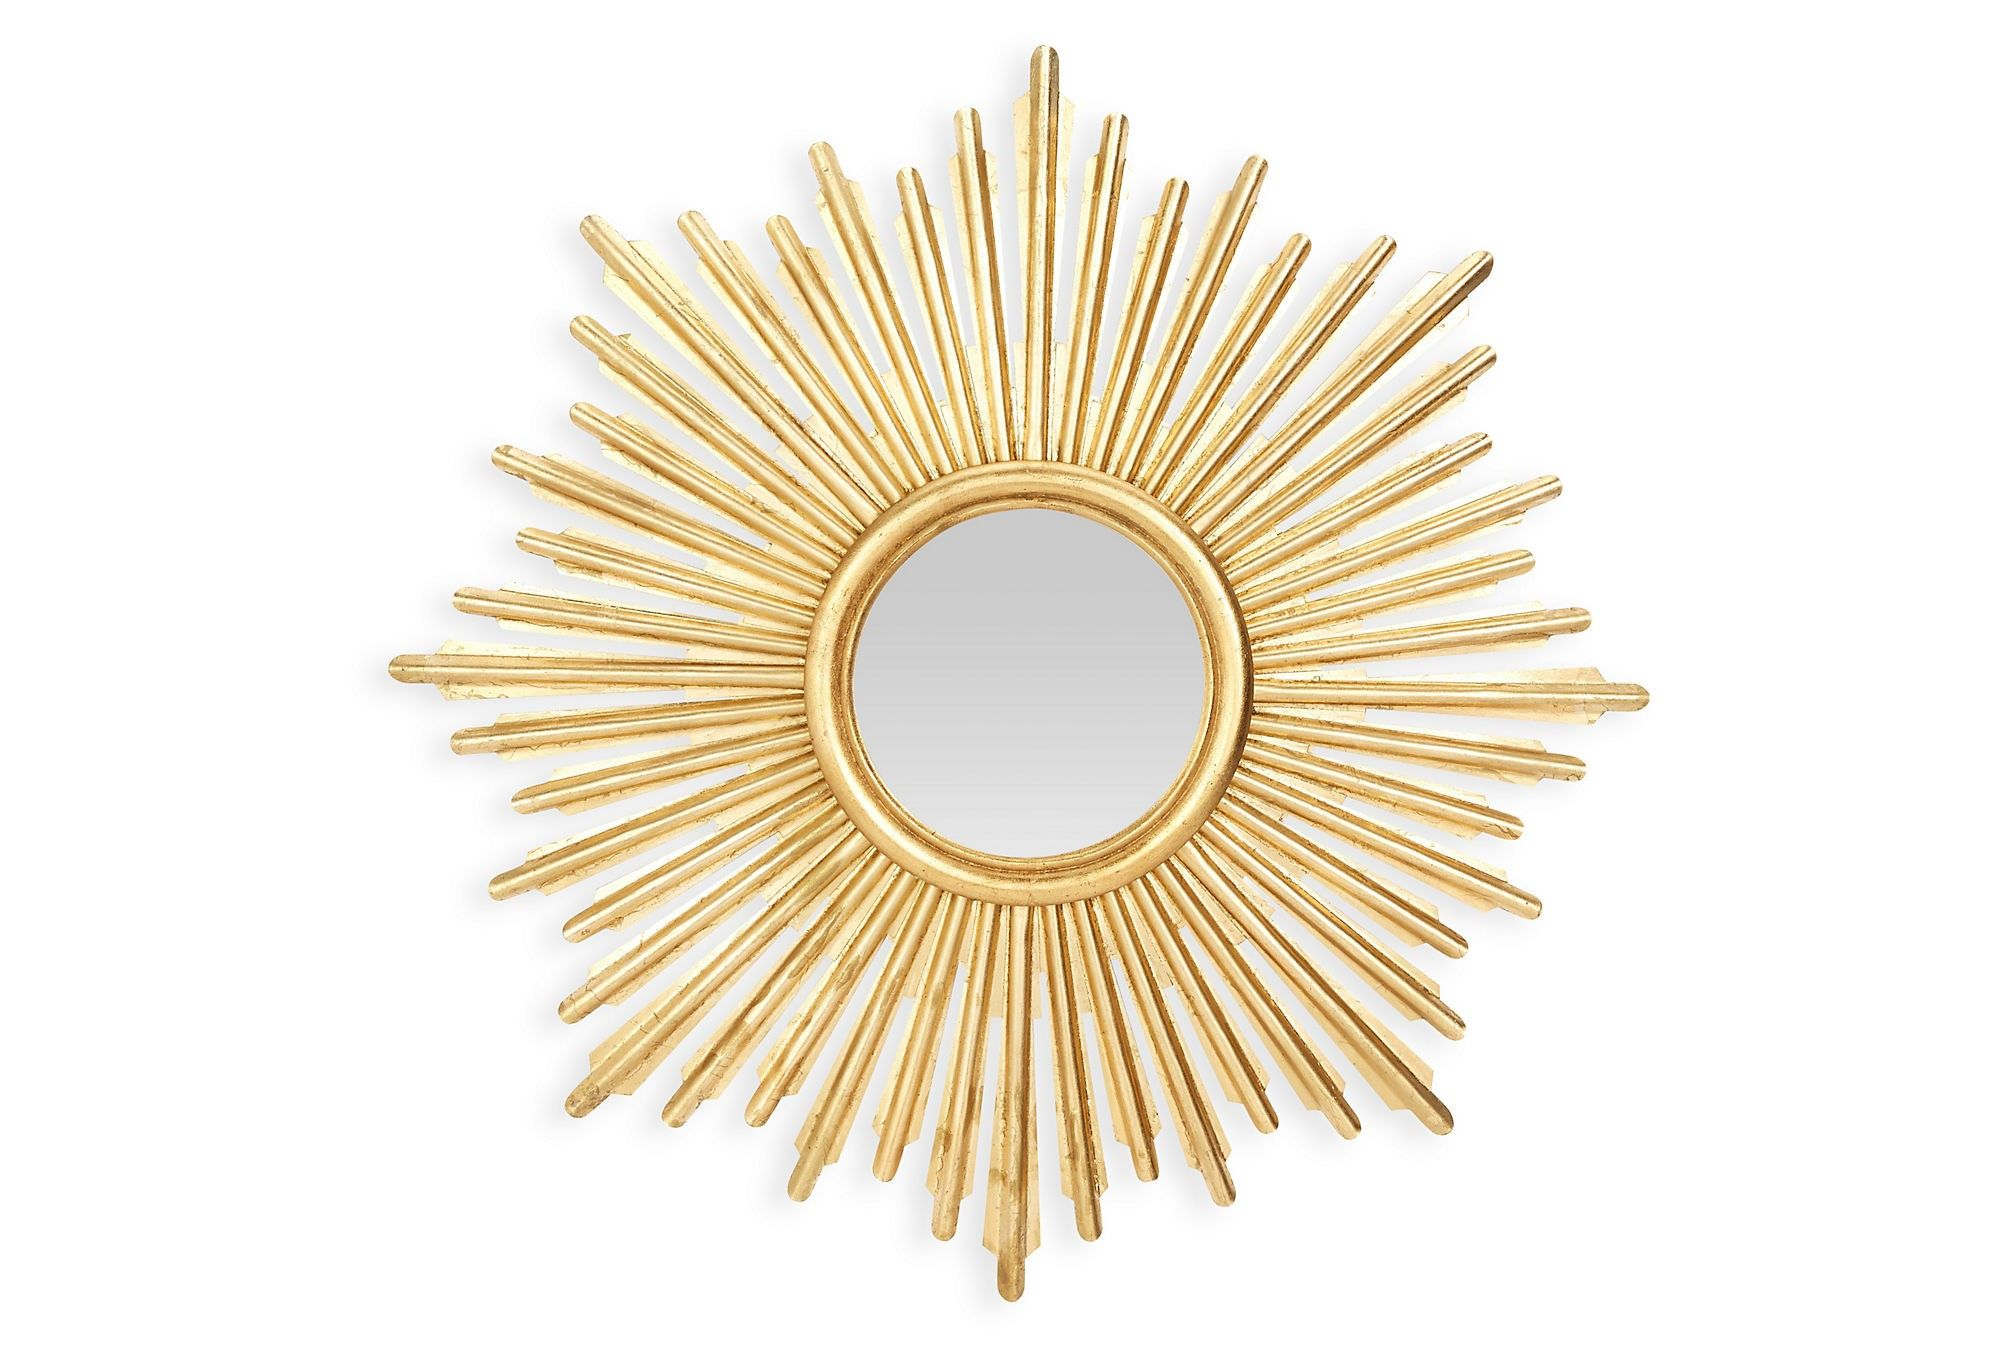 Iron Sunburst Mirror in Antique Gold Finish | Sunburst mirror ...